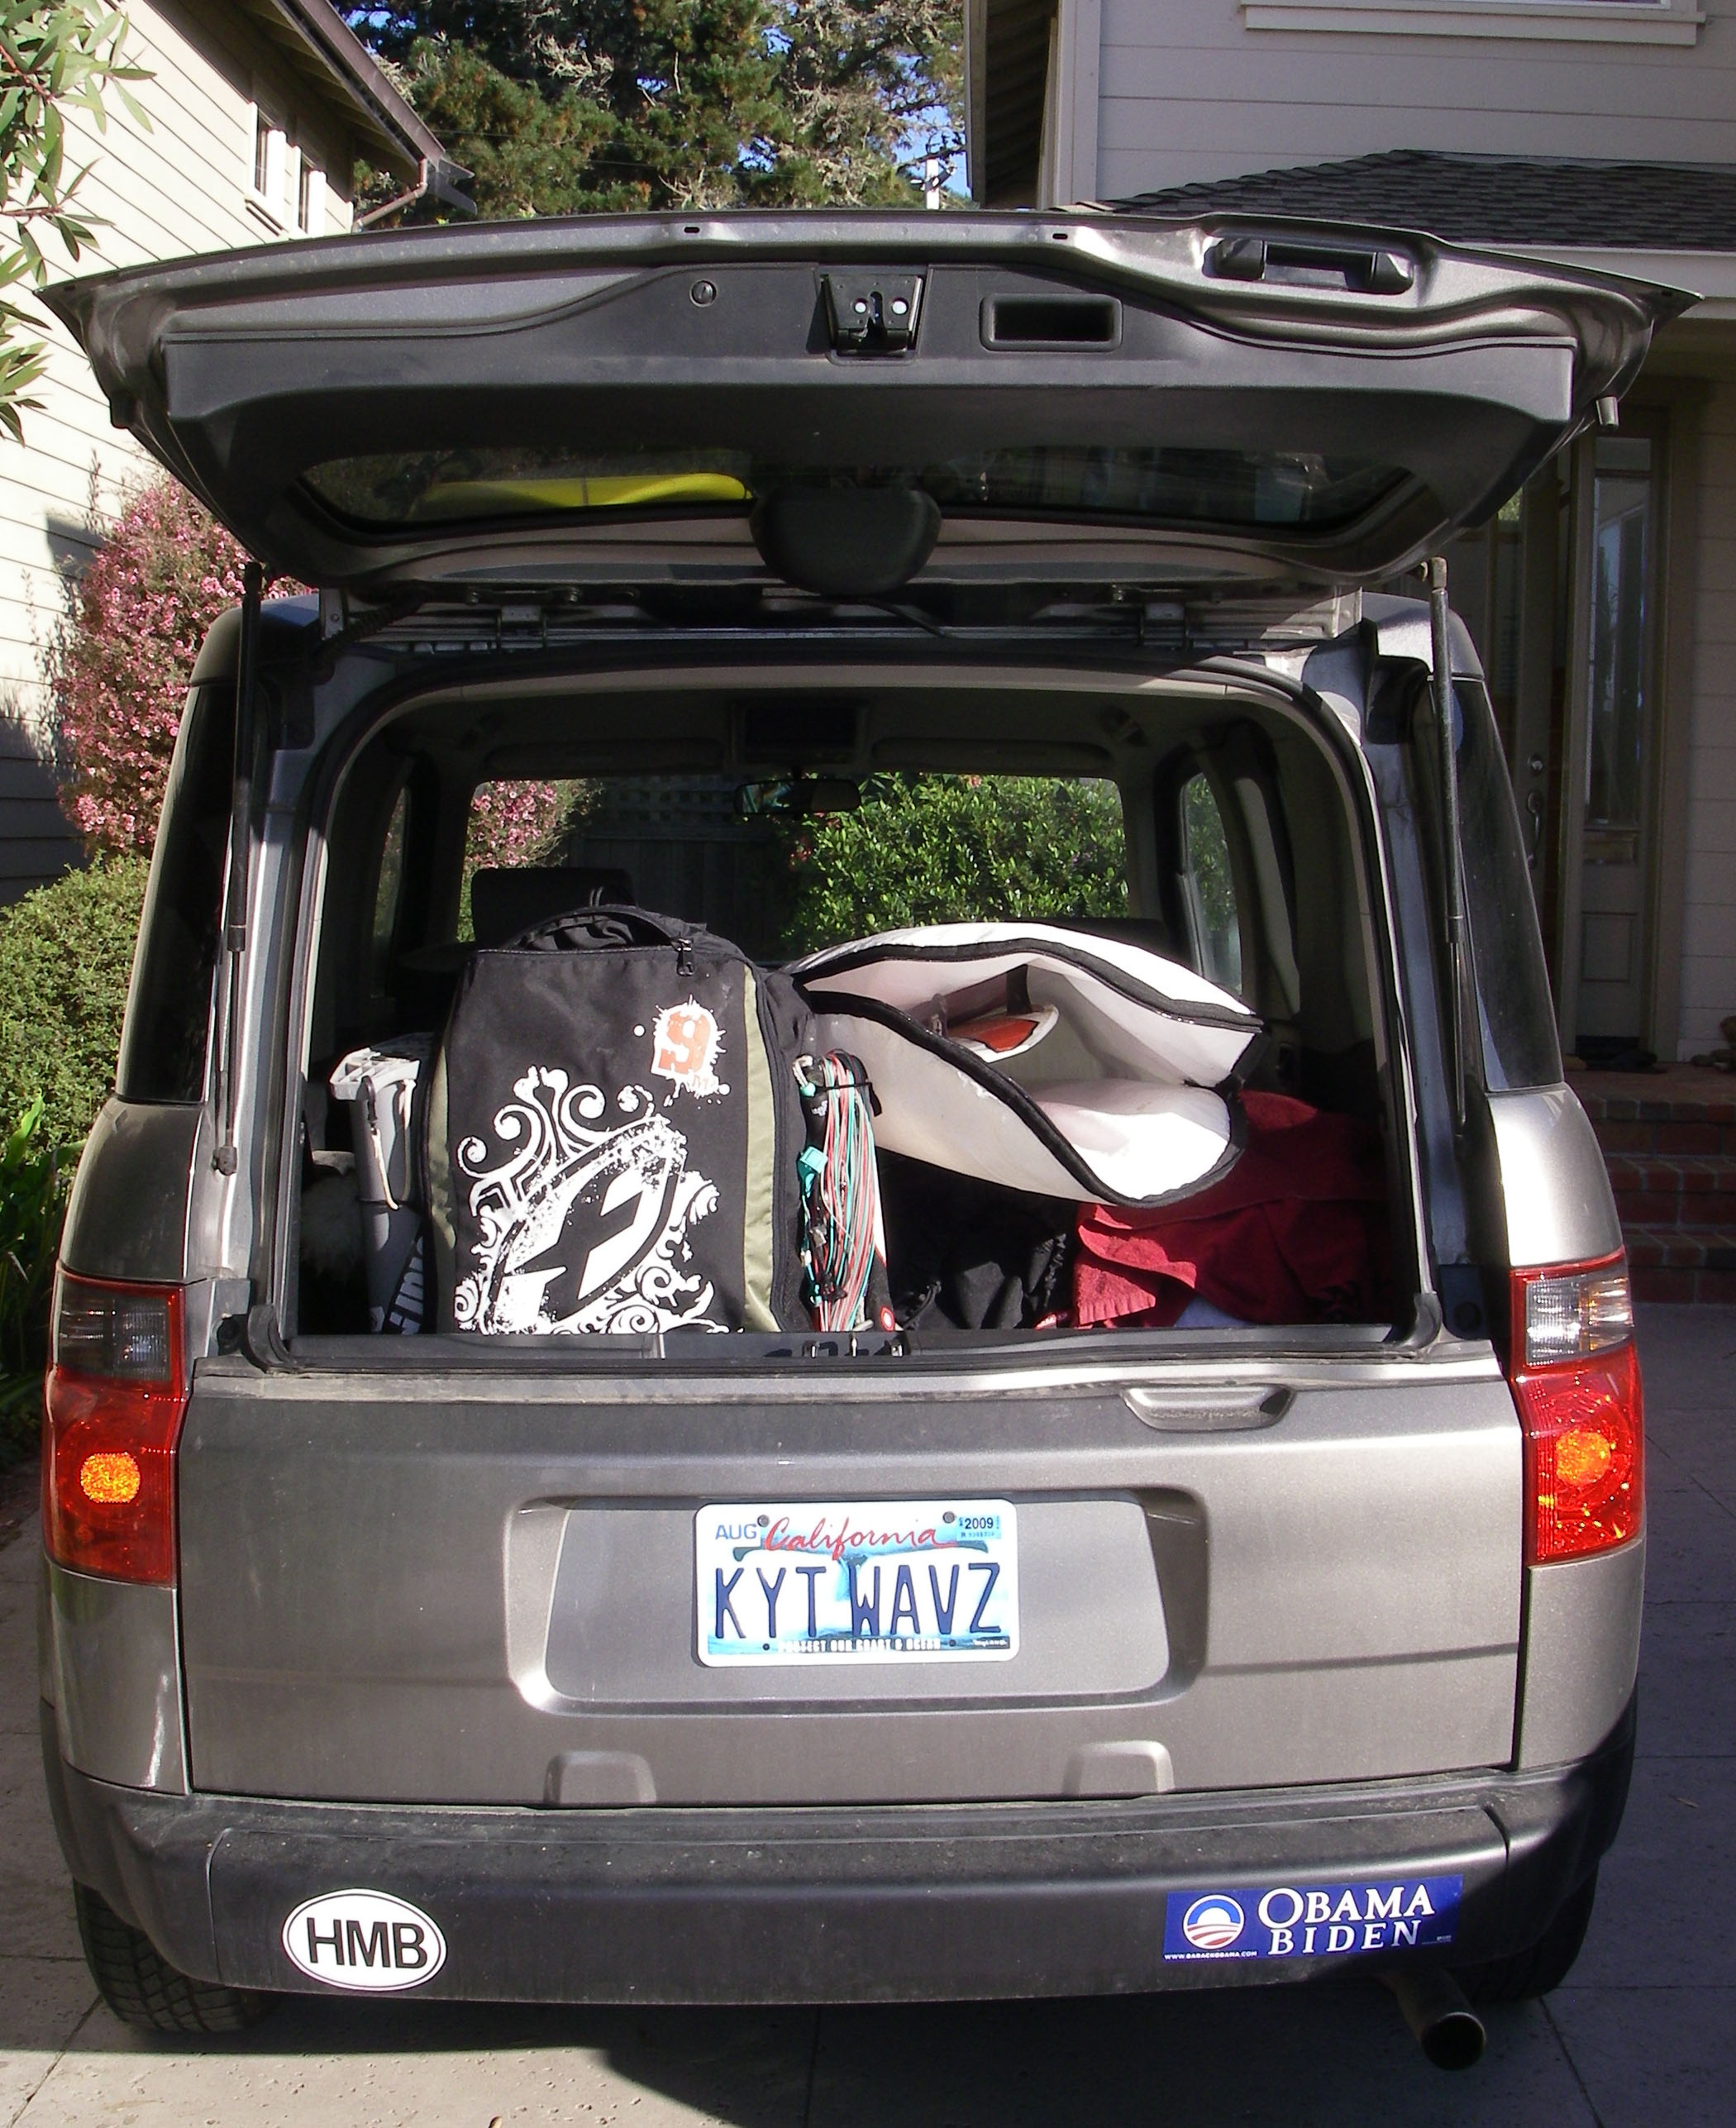 kyt wavz honda element.jpg